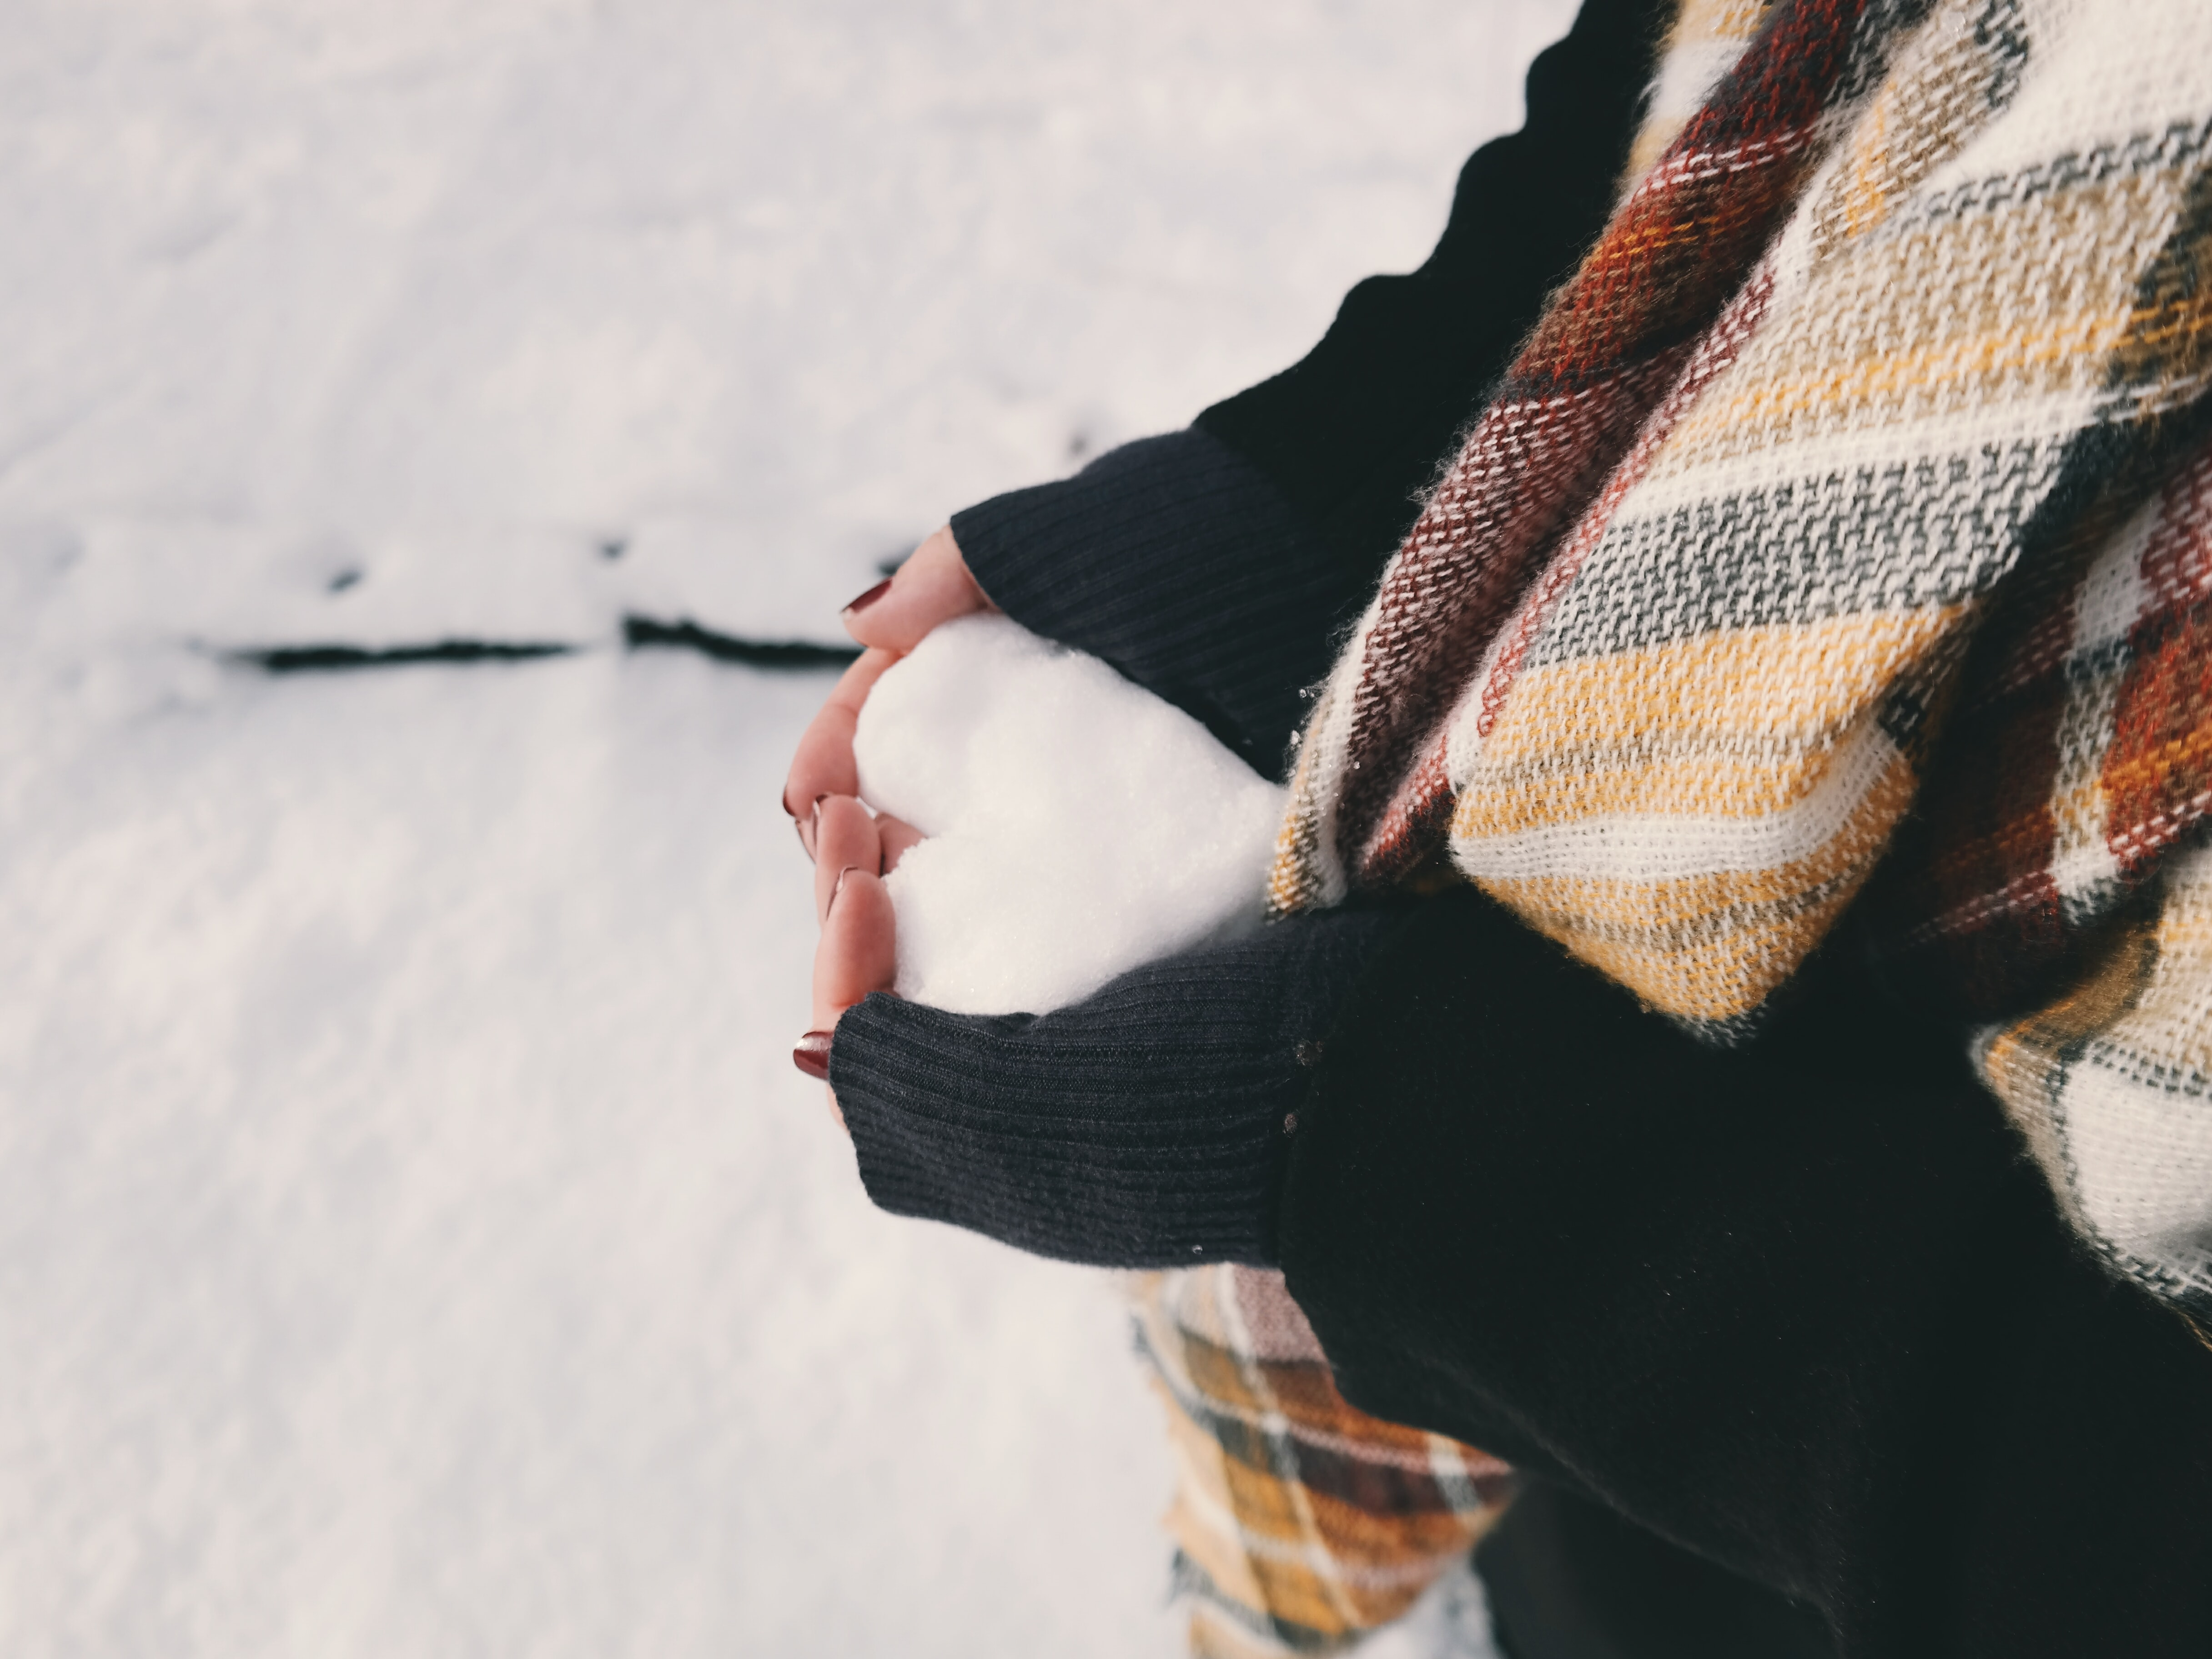 An overhead shot of a person's hands clutching a heart-shaped clump of snow